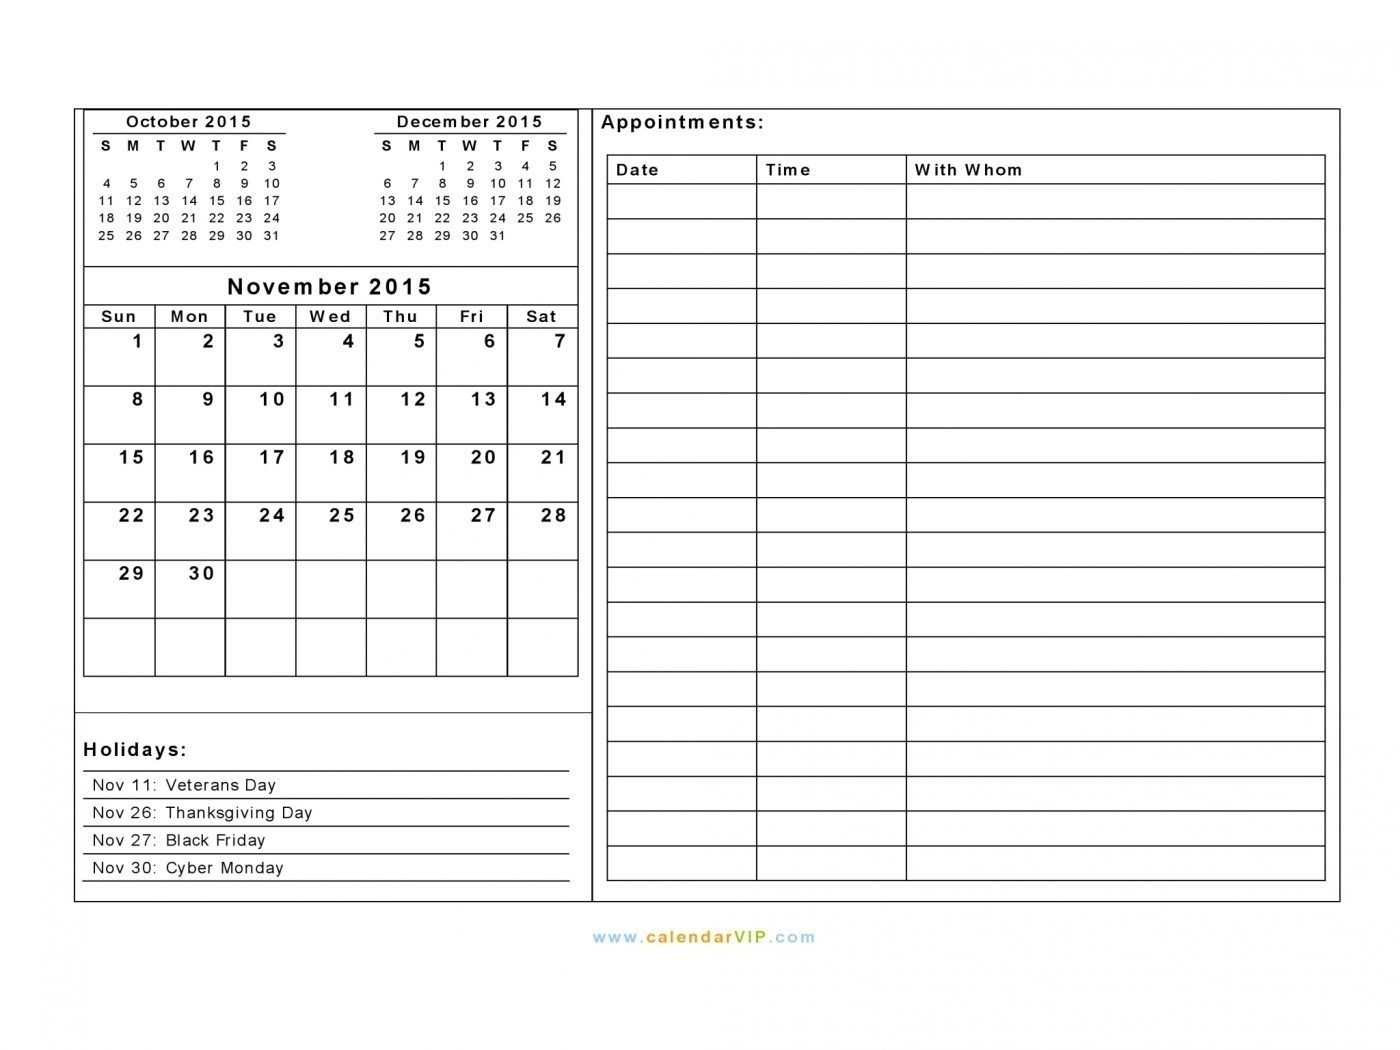 salon appointment calenders 15 minute time slots